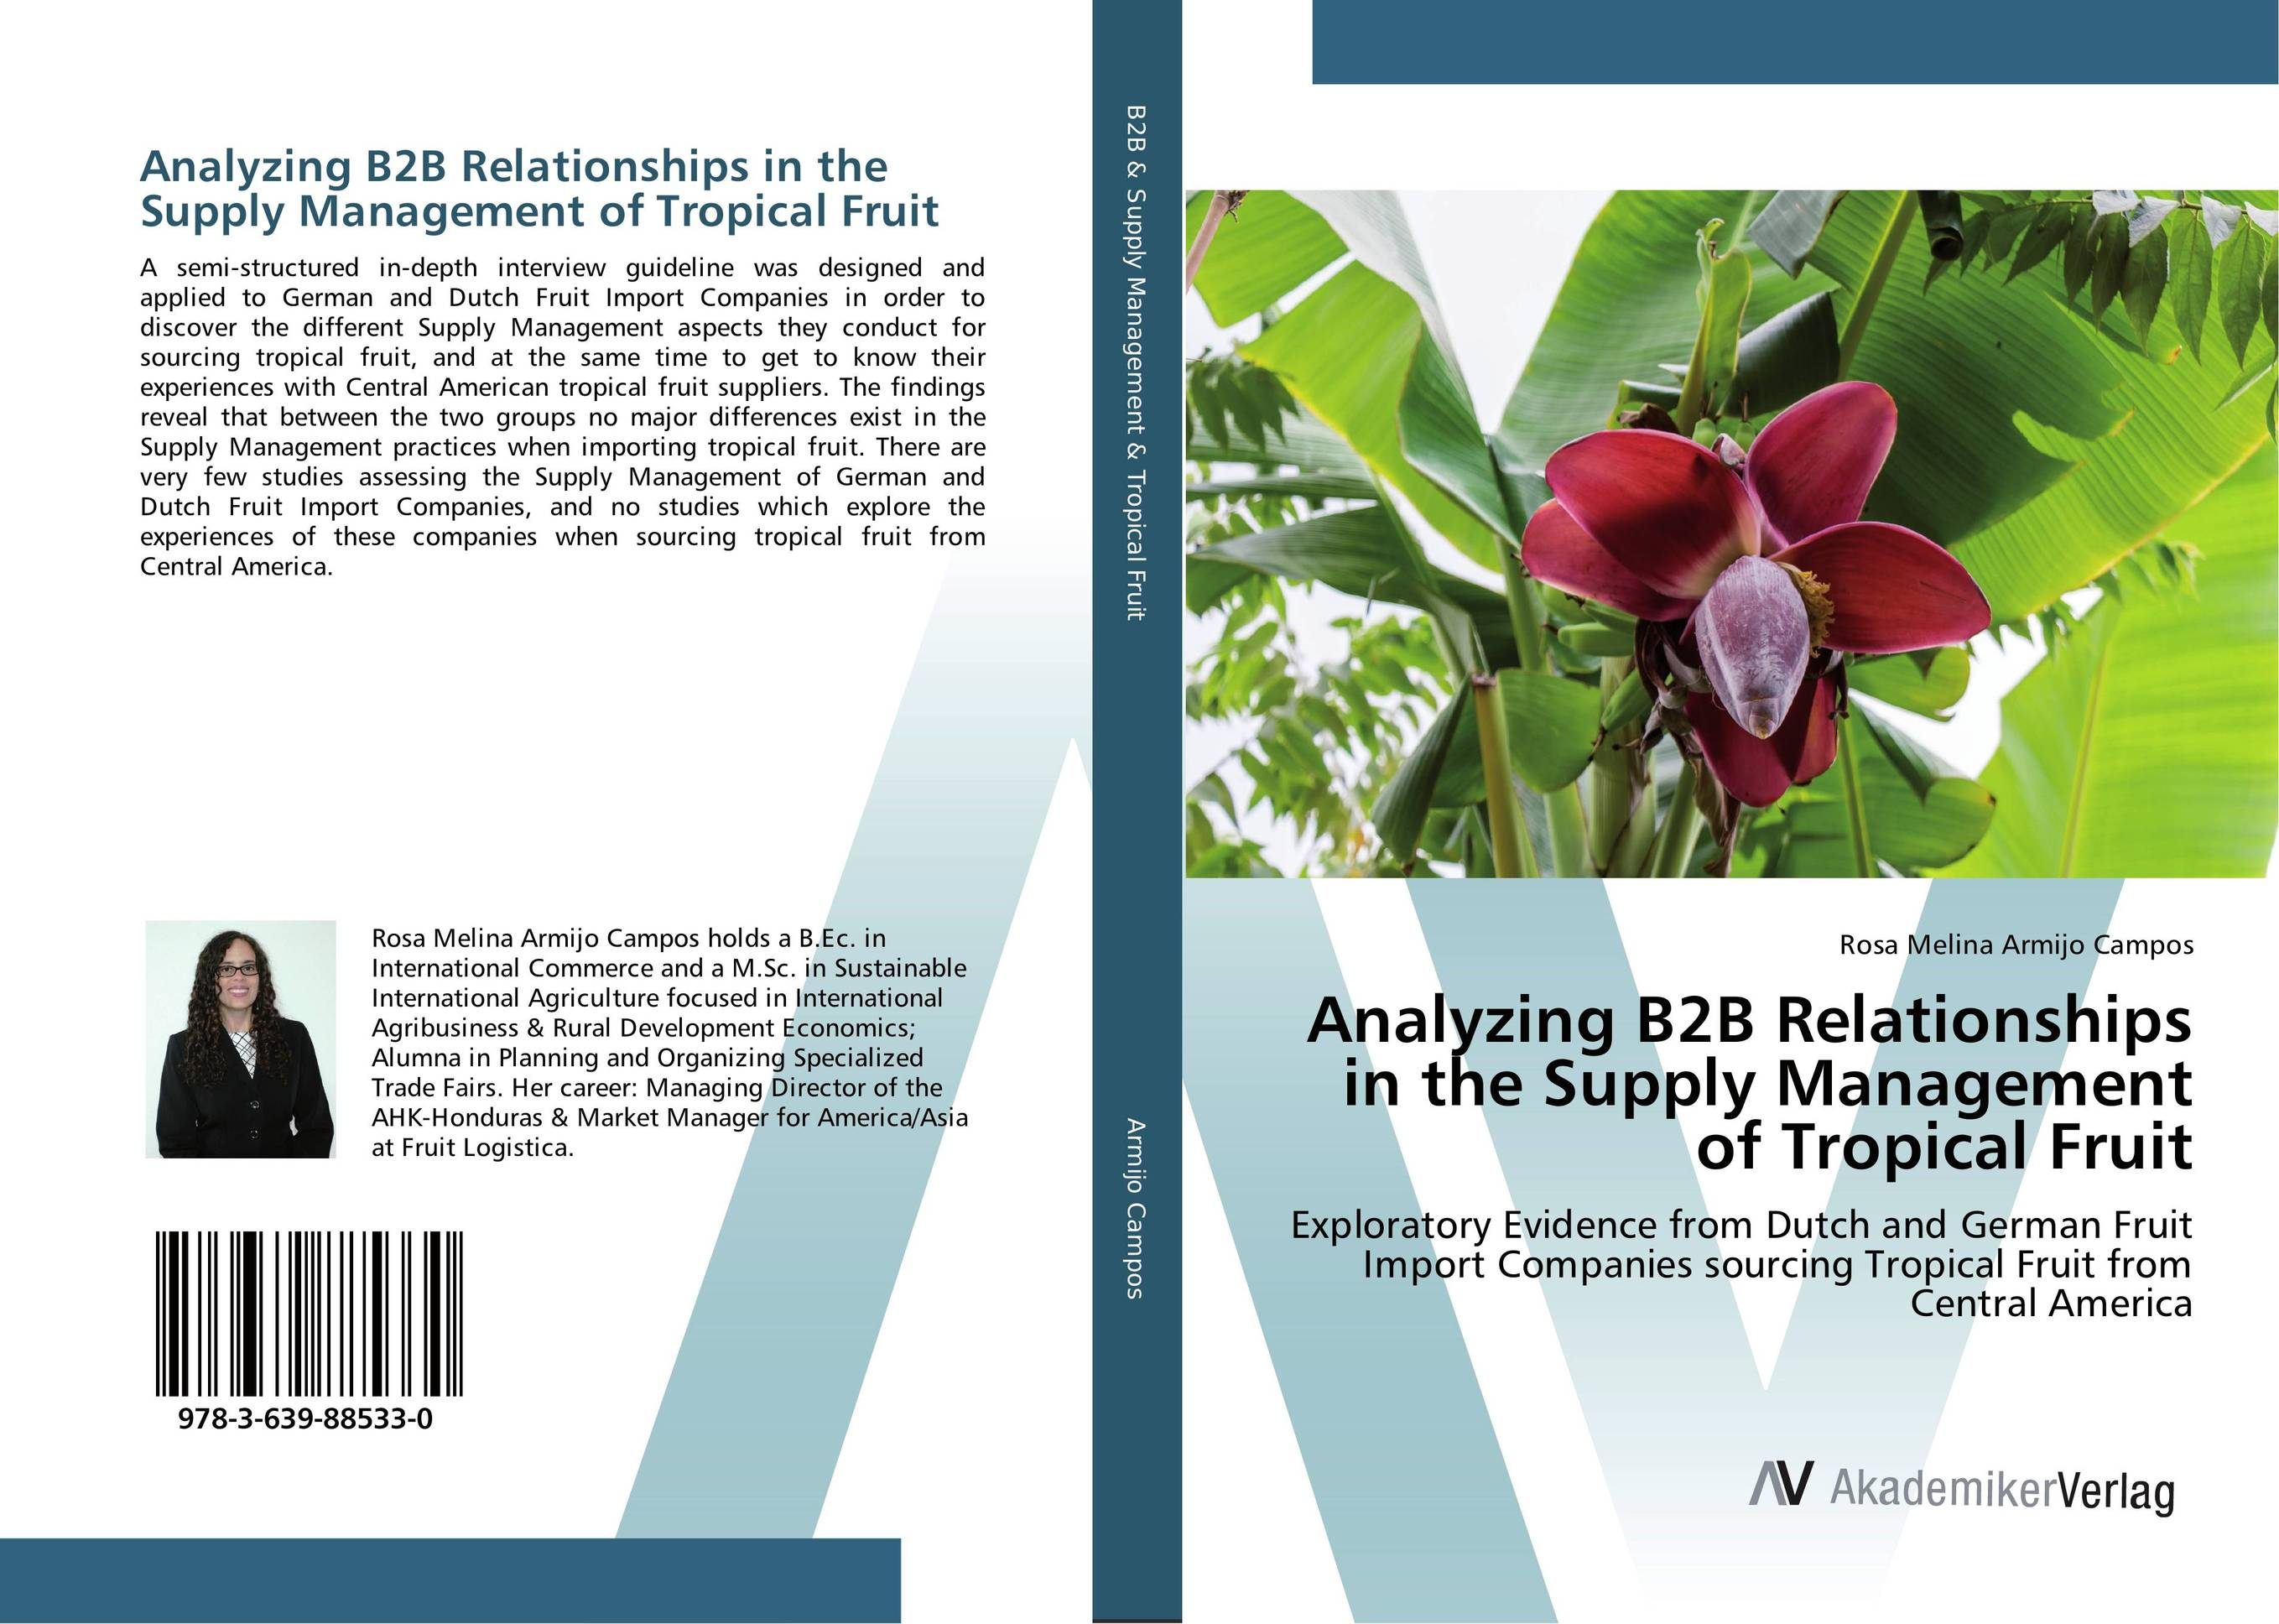 Analyzing B2B Relationships in the Supply Management of Tropical Fruit dole tropical fruit in juice 113g pack of 2